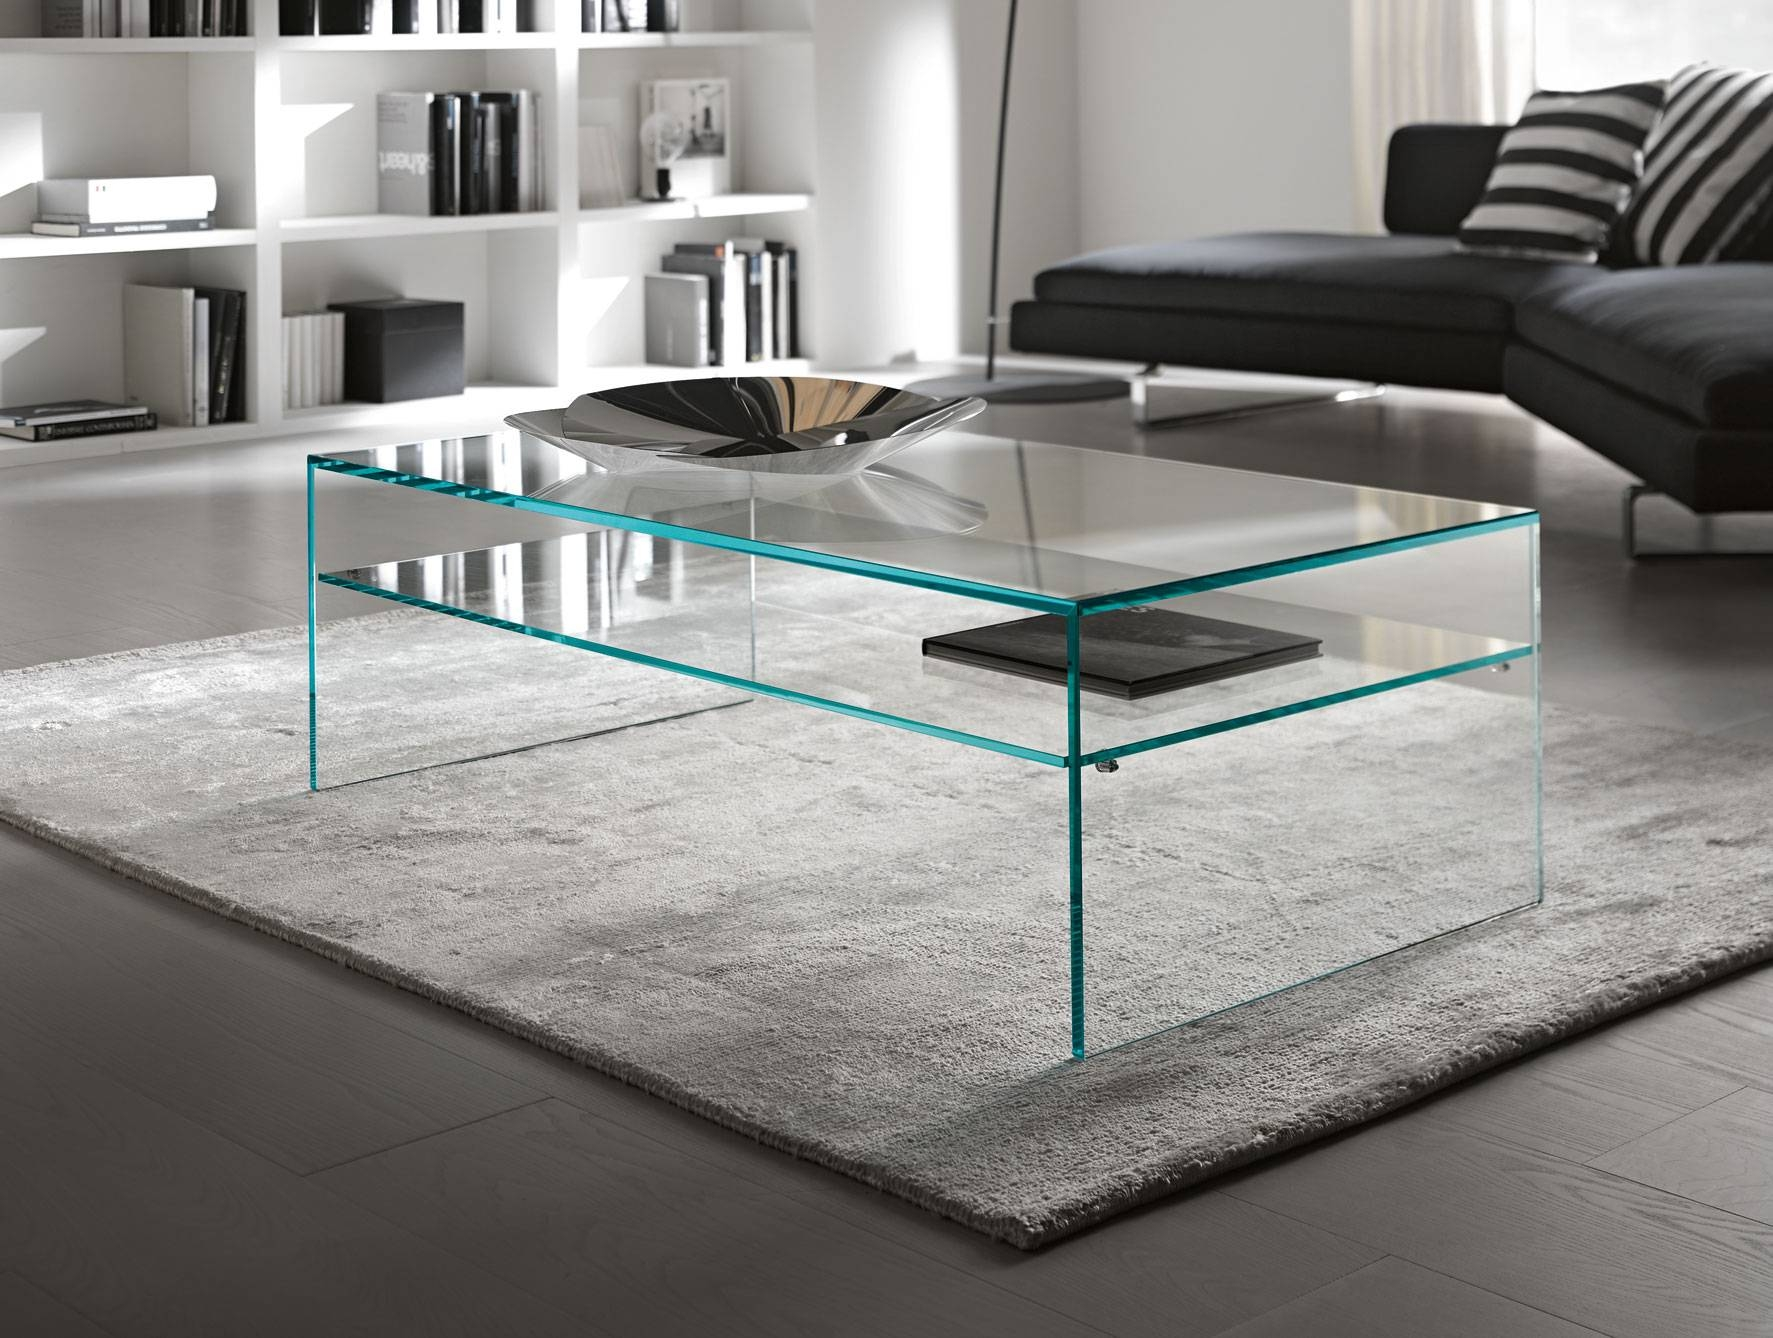 Nella Vetrina Tonelli Fratina 2 Modular Italian Coffee Table intended for Italian Coffee Tables (Image 14 of 15)